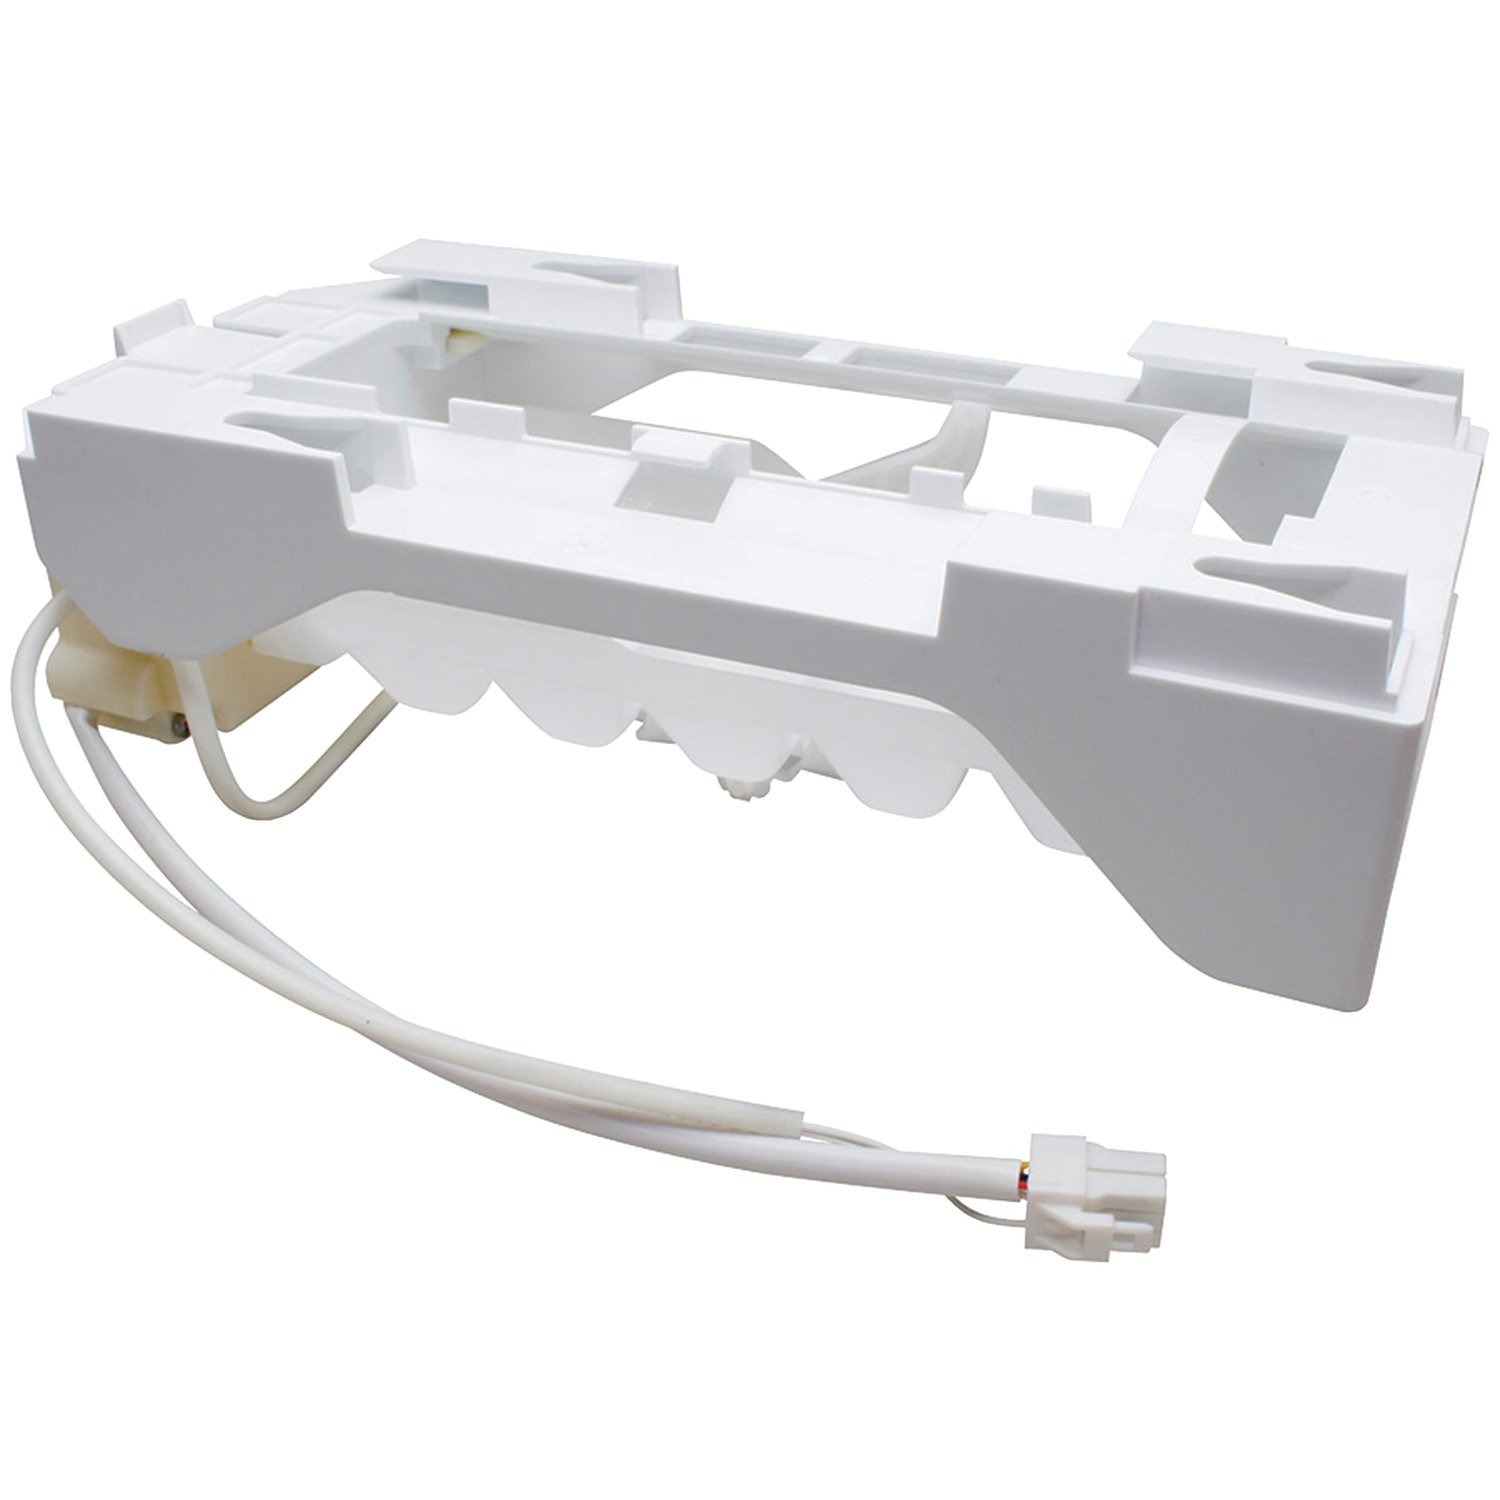 Exact Replacement Parts ER243297606 Ice Maker for Whirlpool Refrigerators, White